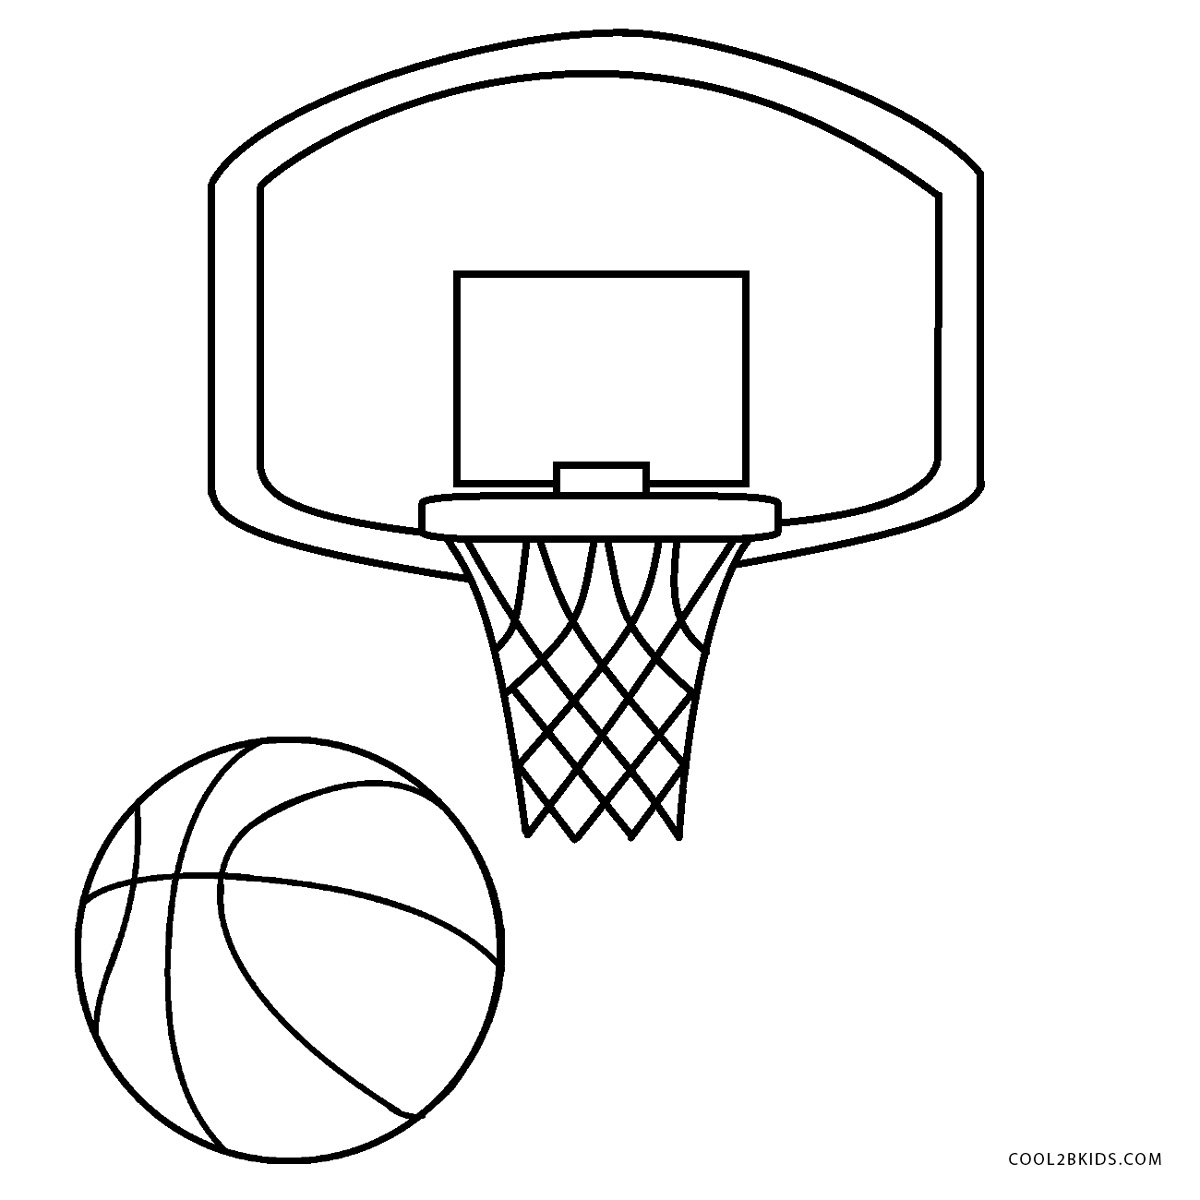 basketball coloring page basketball coloring pages for kids it is the favorite coloring basketball page